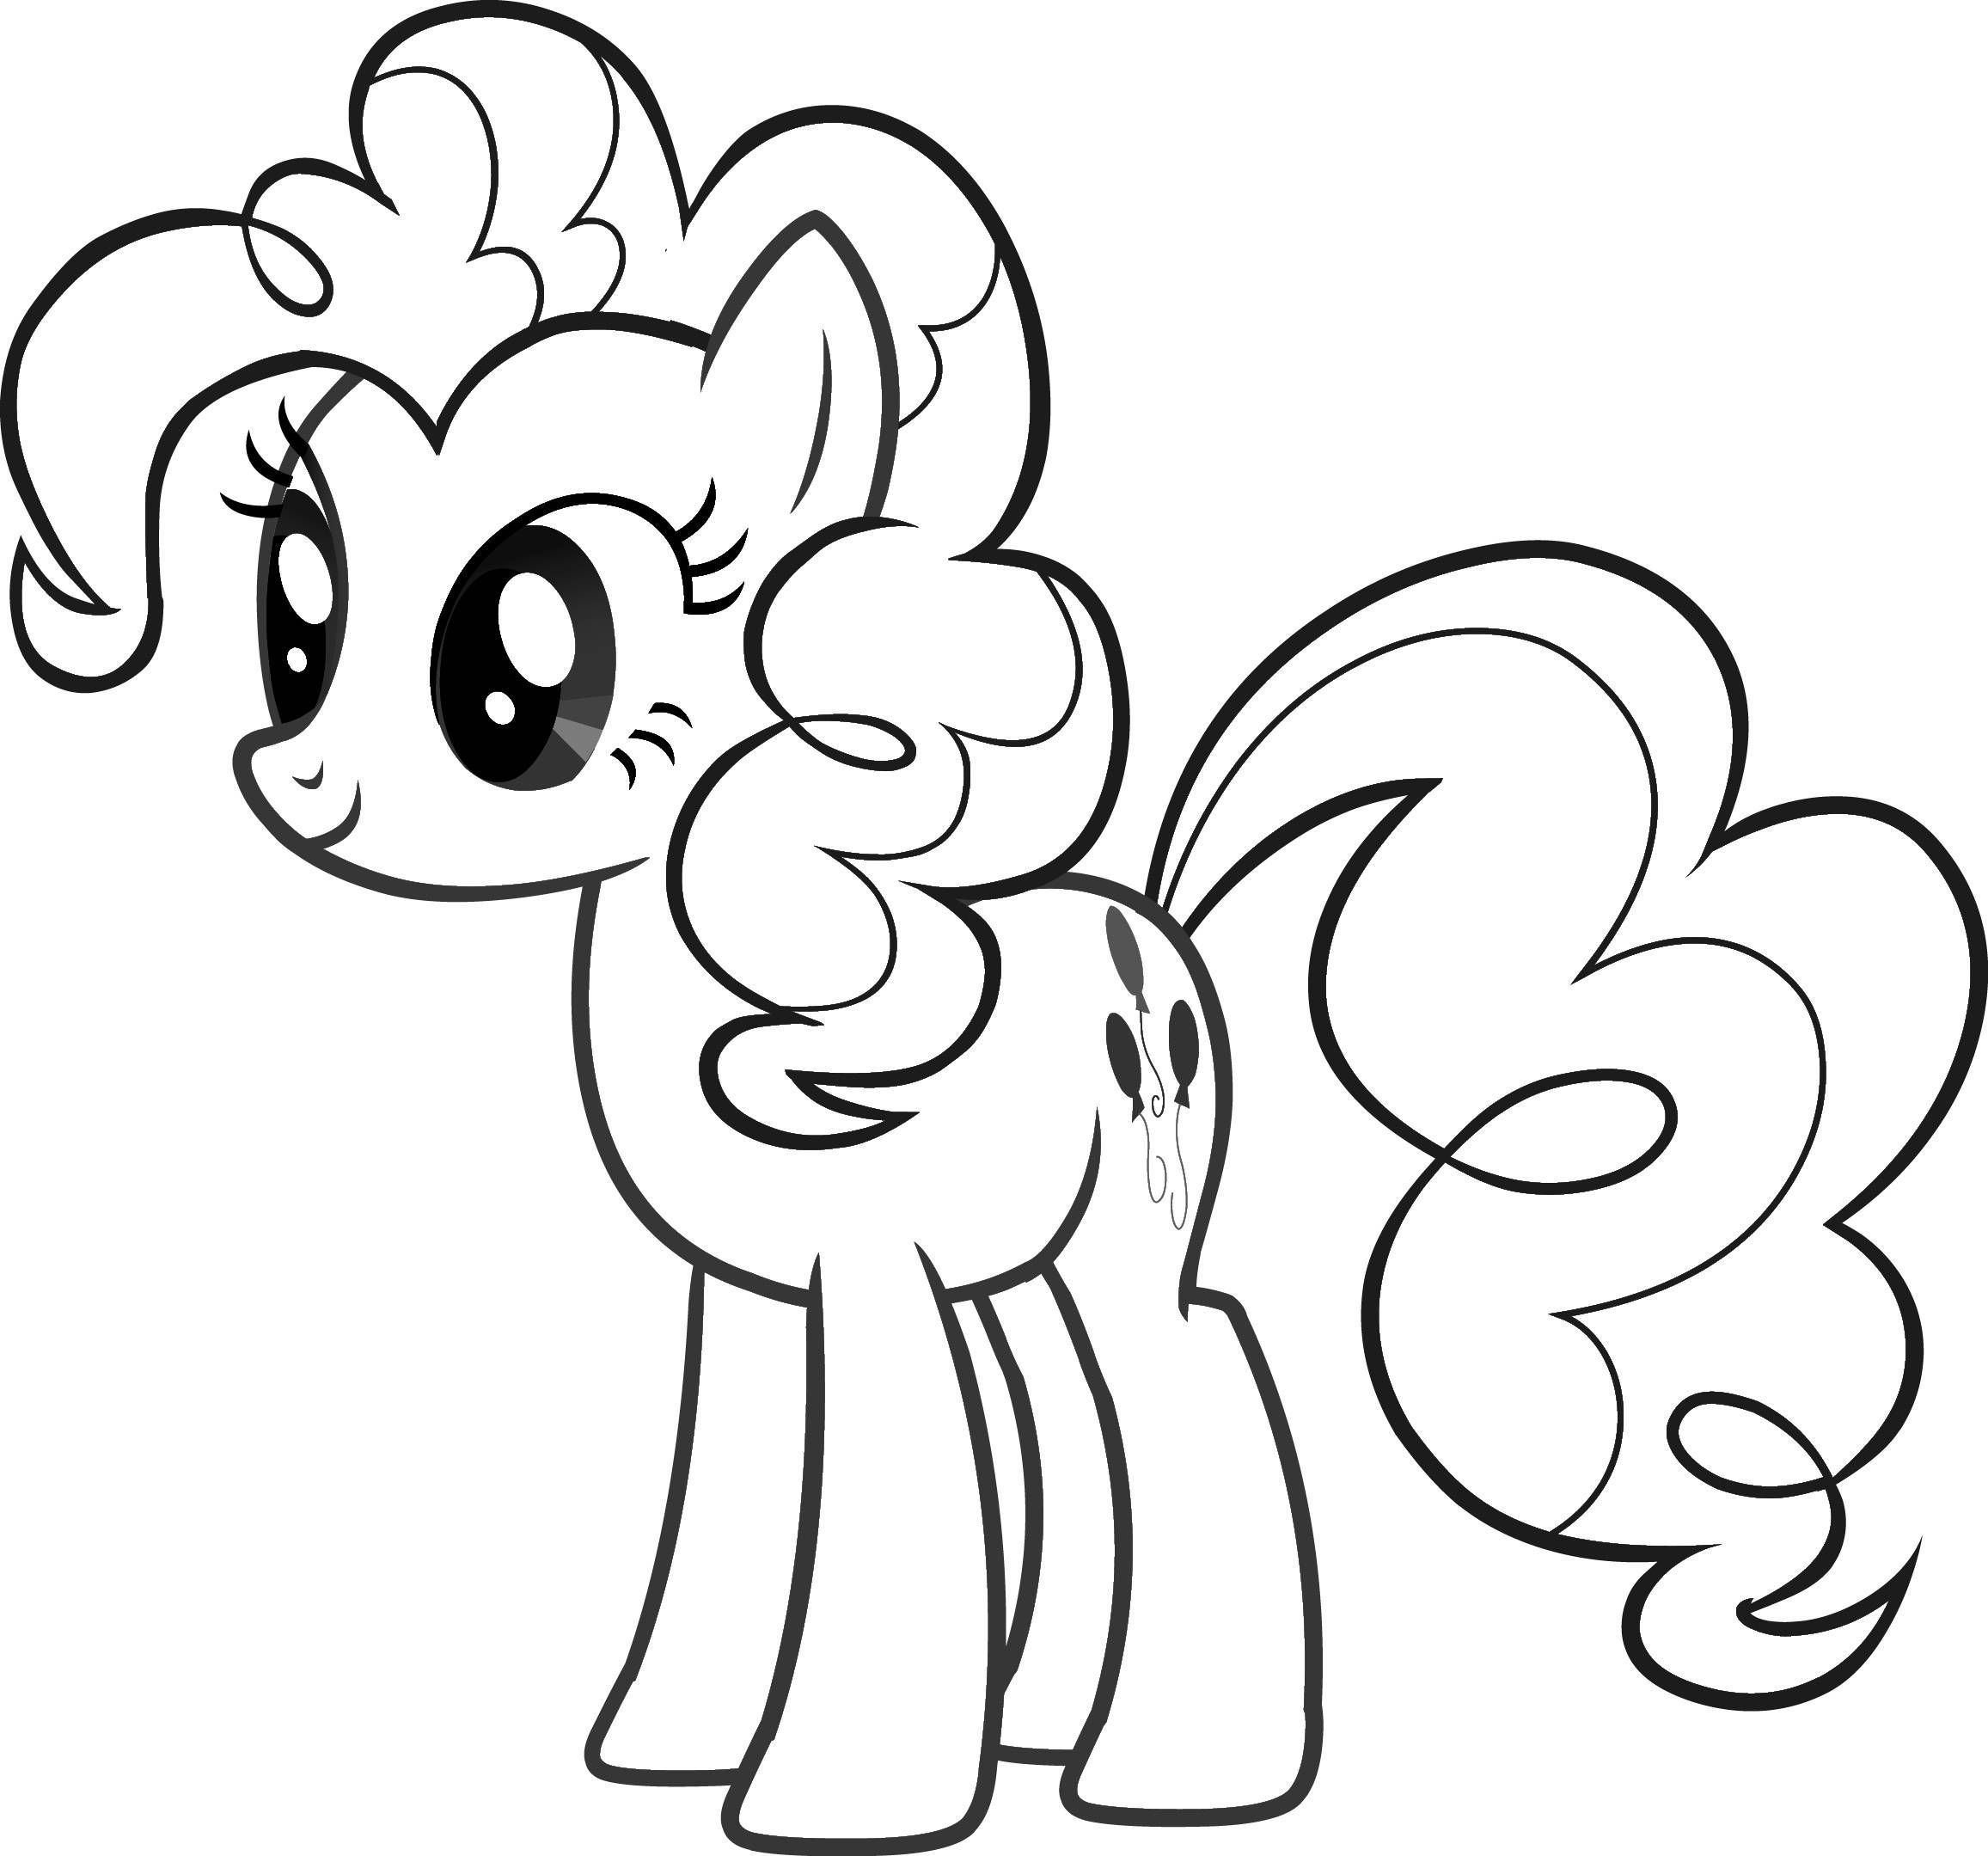 My Little Pony Coloring Sheet My Little Pony Coloring Pages Pdf My Little Pony Co Unicorn Coloring Pages Cartoon Coloring Pages Kids Printable Coloring Pages